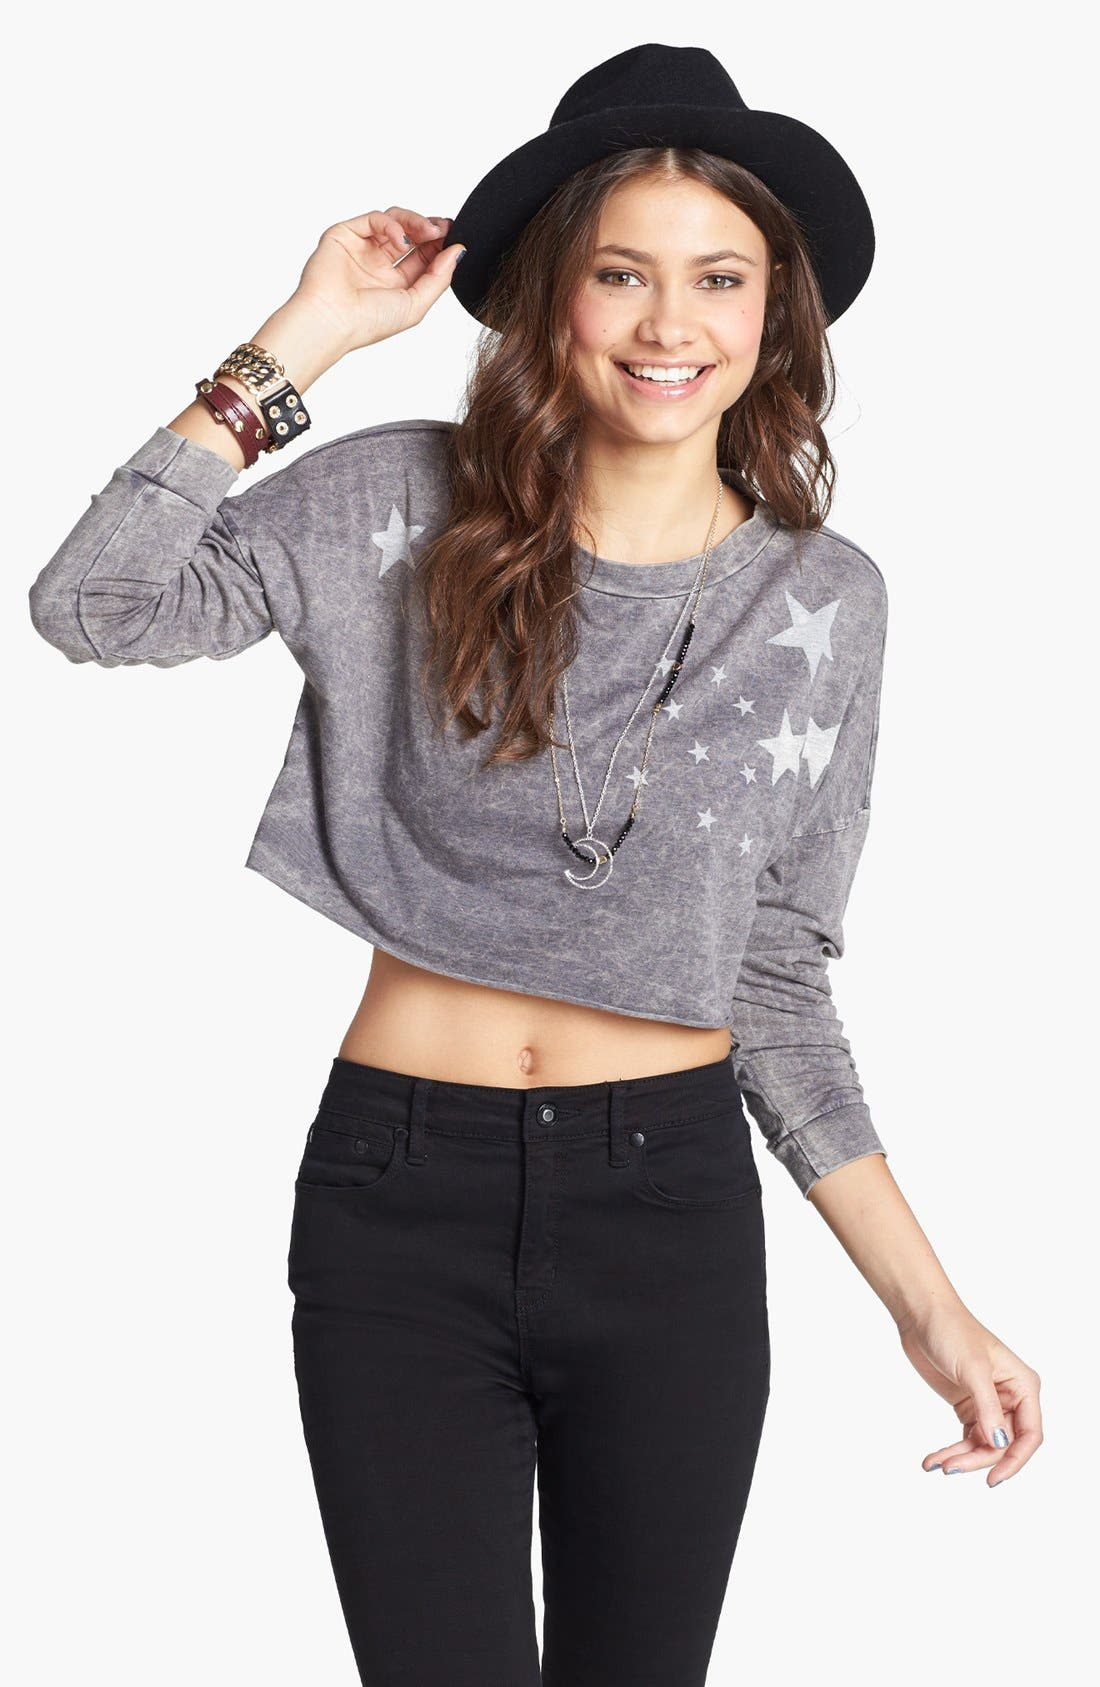 Alternate Image 1 Selected - JC Fits Star Crop Top (Juniors) (Online Only)